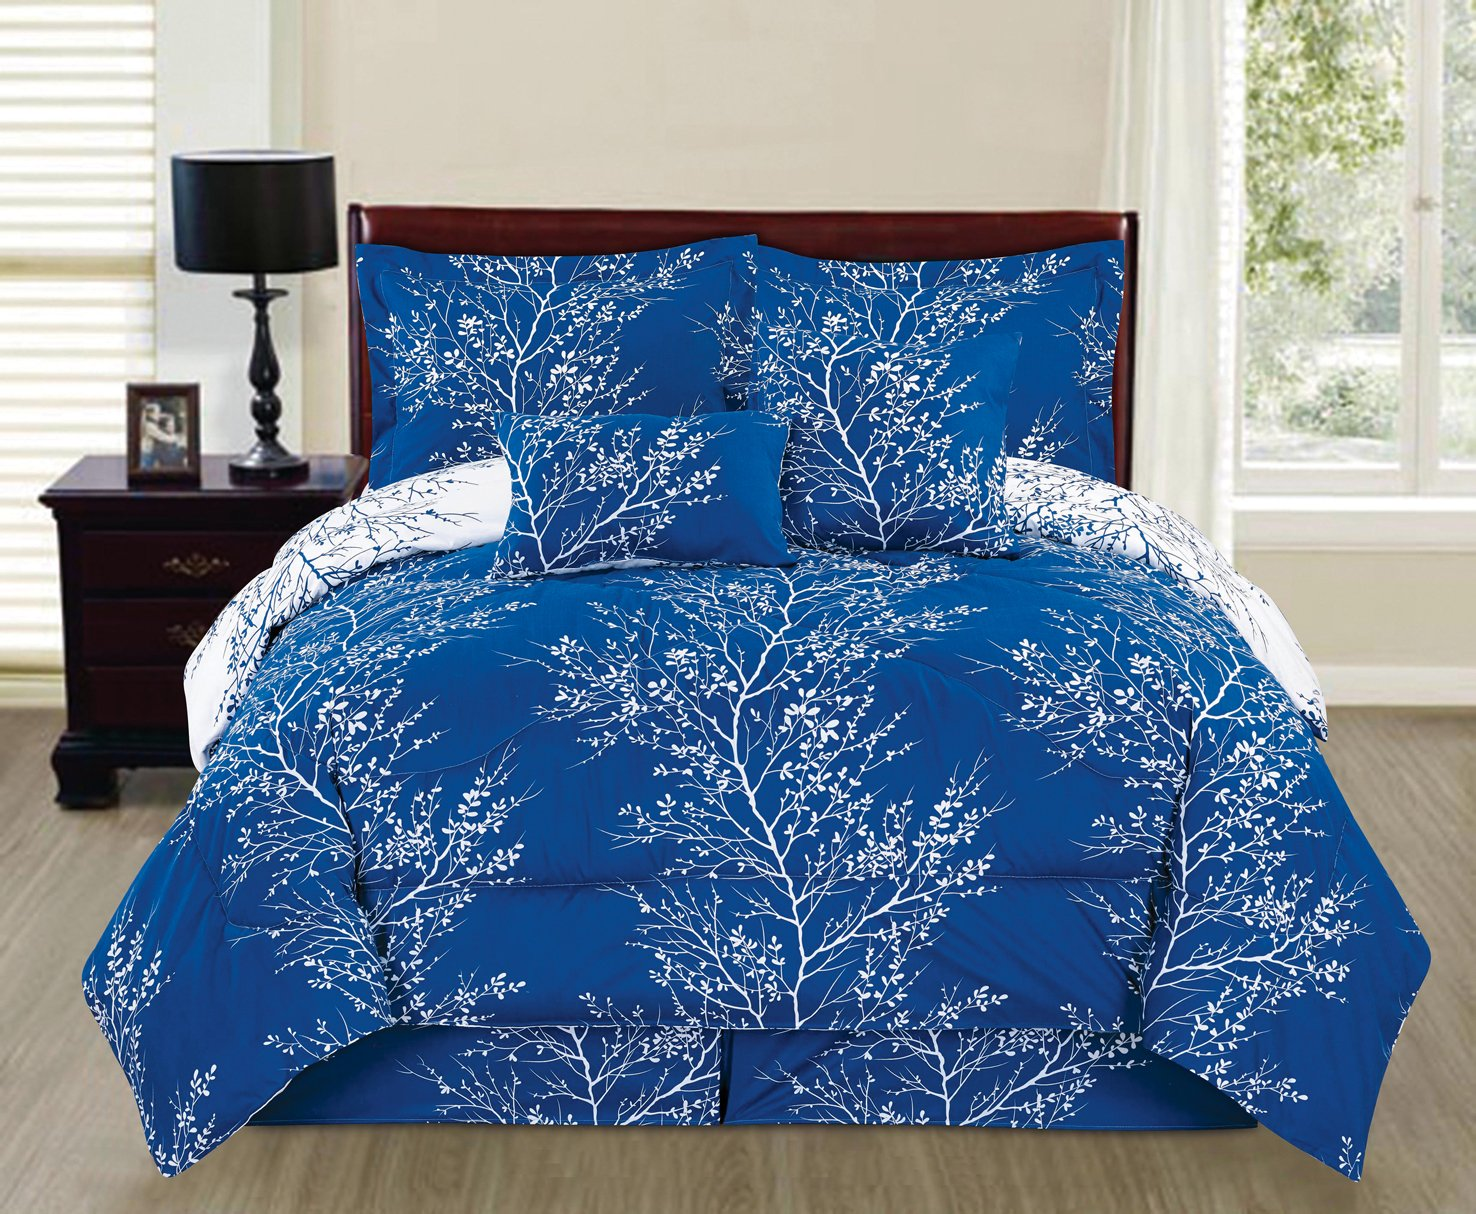 Blue And Brown Bedding Sets Ease Bedding With Style - Blue bedding and comforter sets